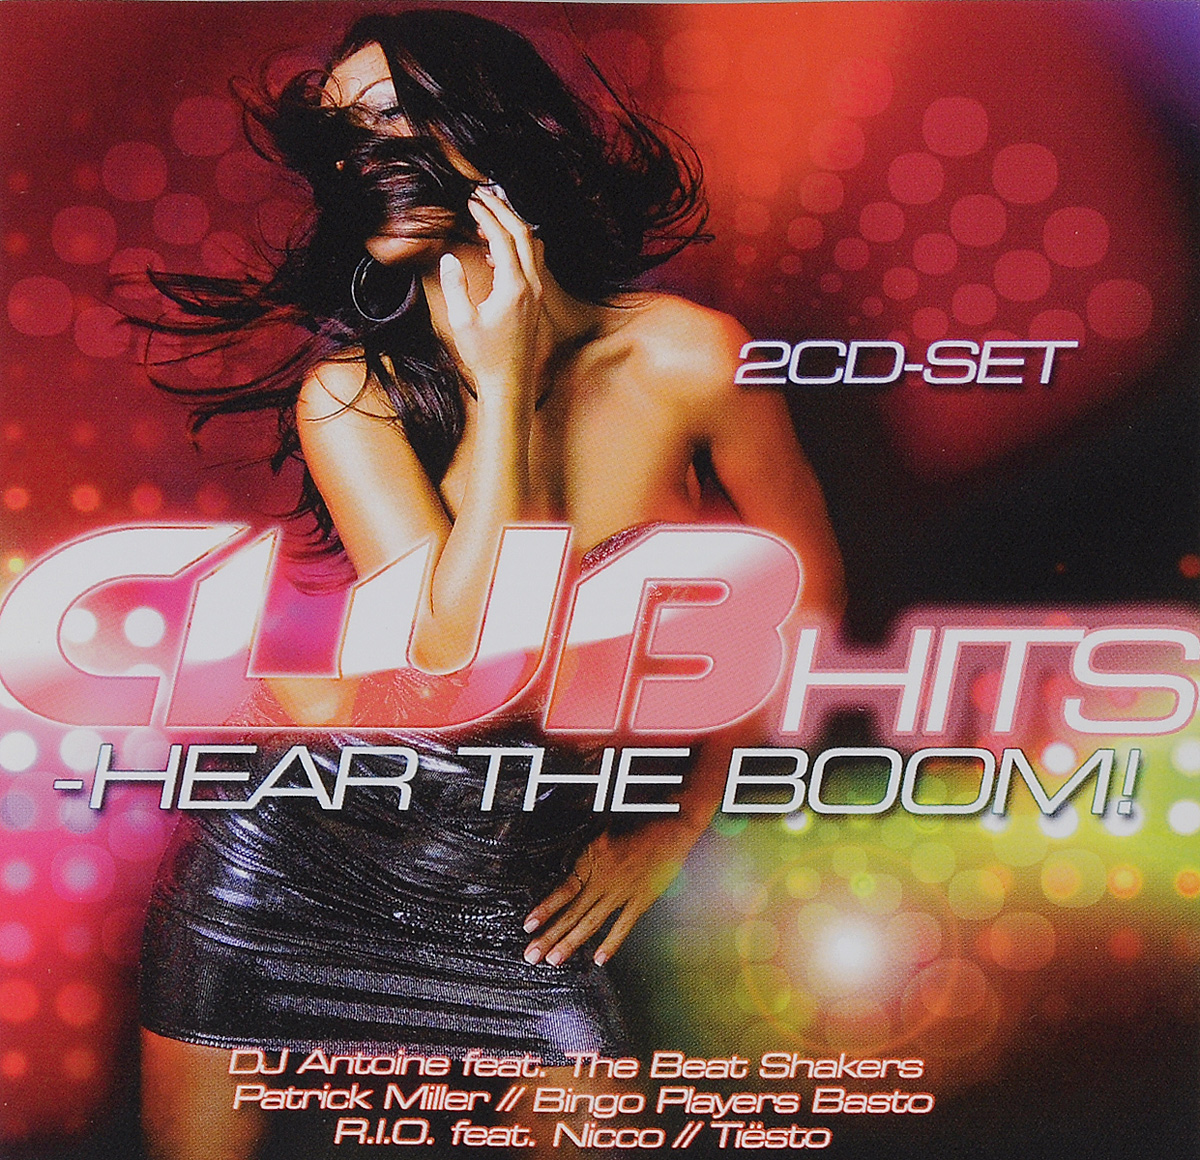 Club Hits. Hear The Boom (2 CD) cd foster the people sacred hearts club